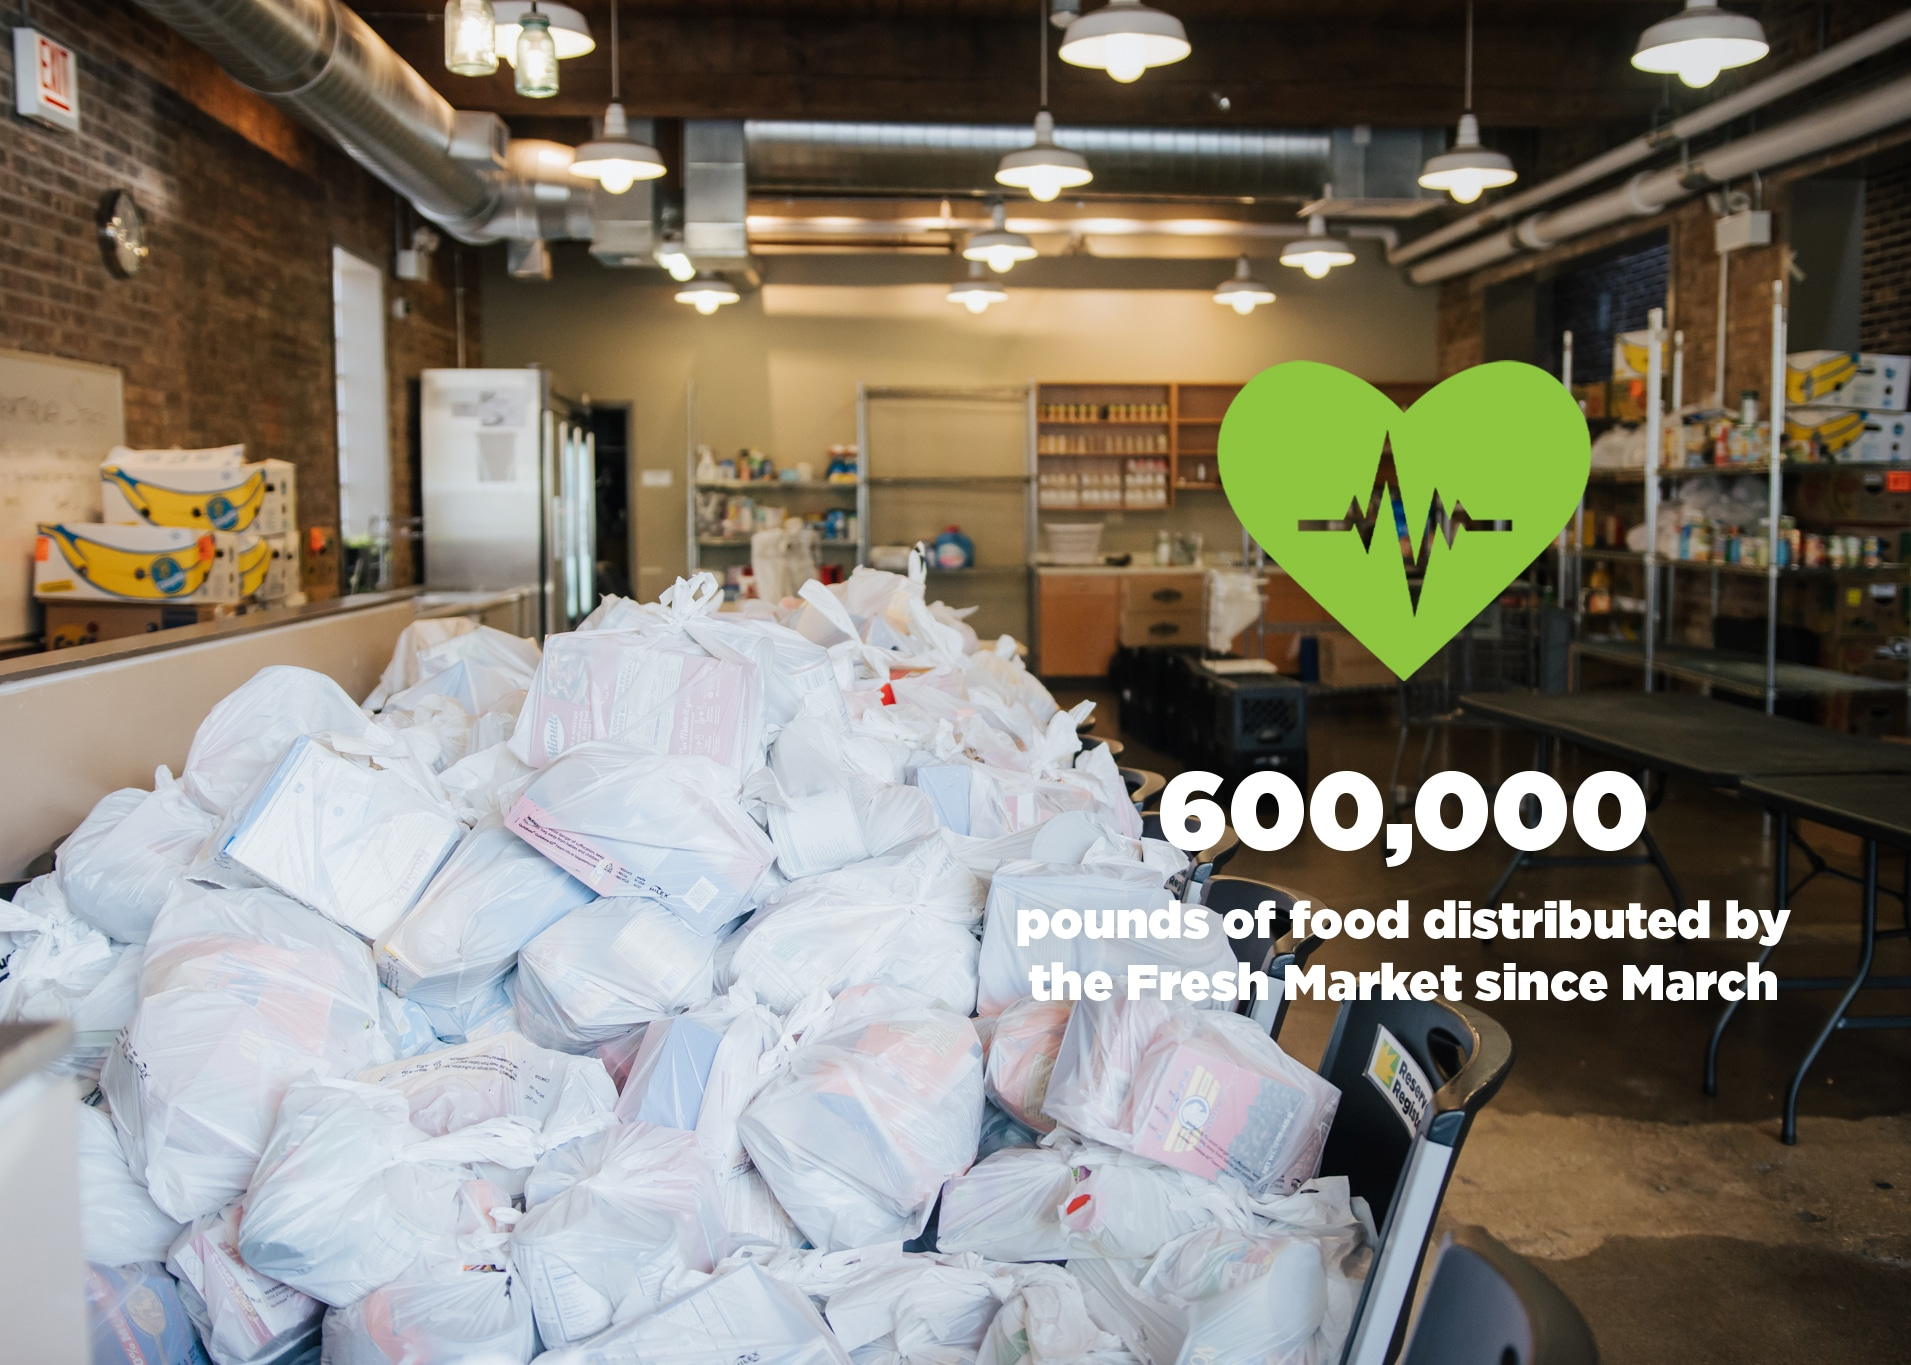 600,000 pounds of food distributed by the Fresh Market since March